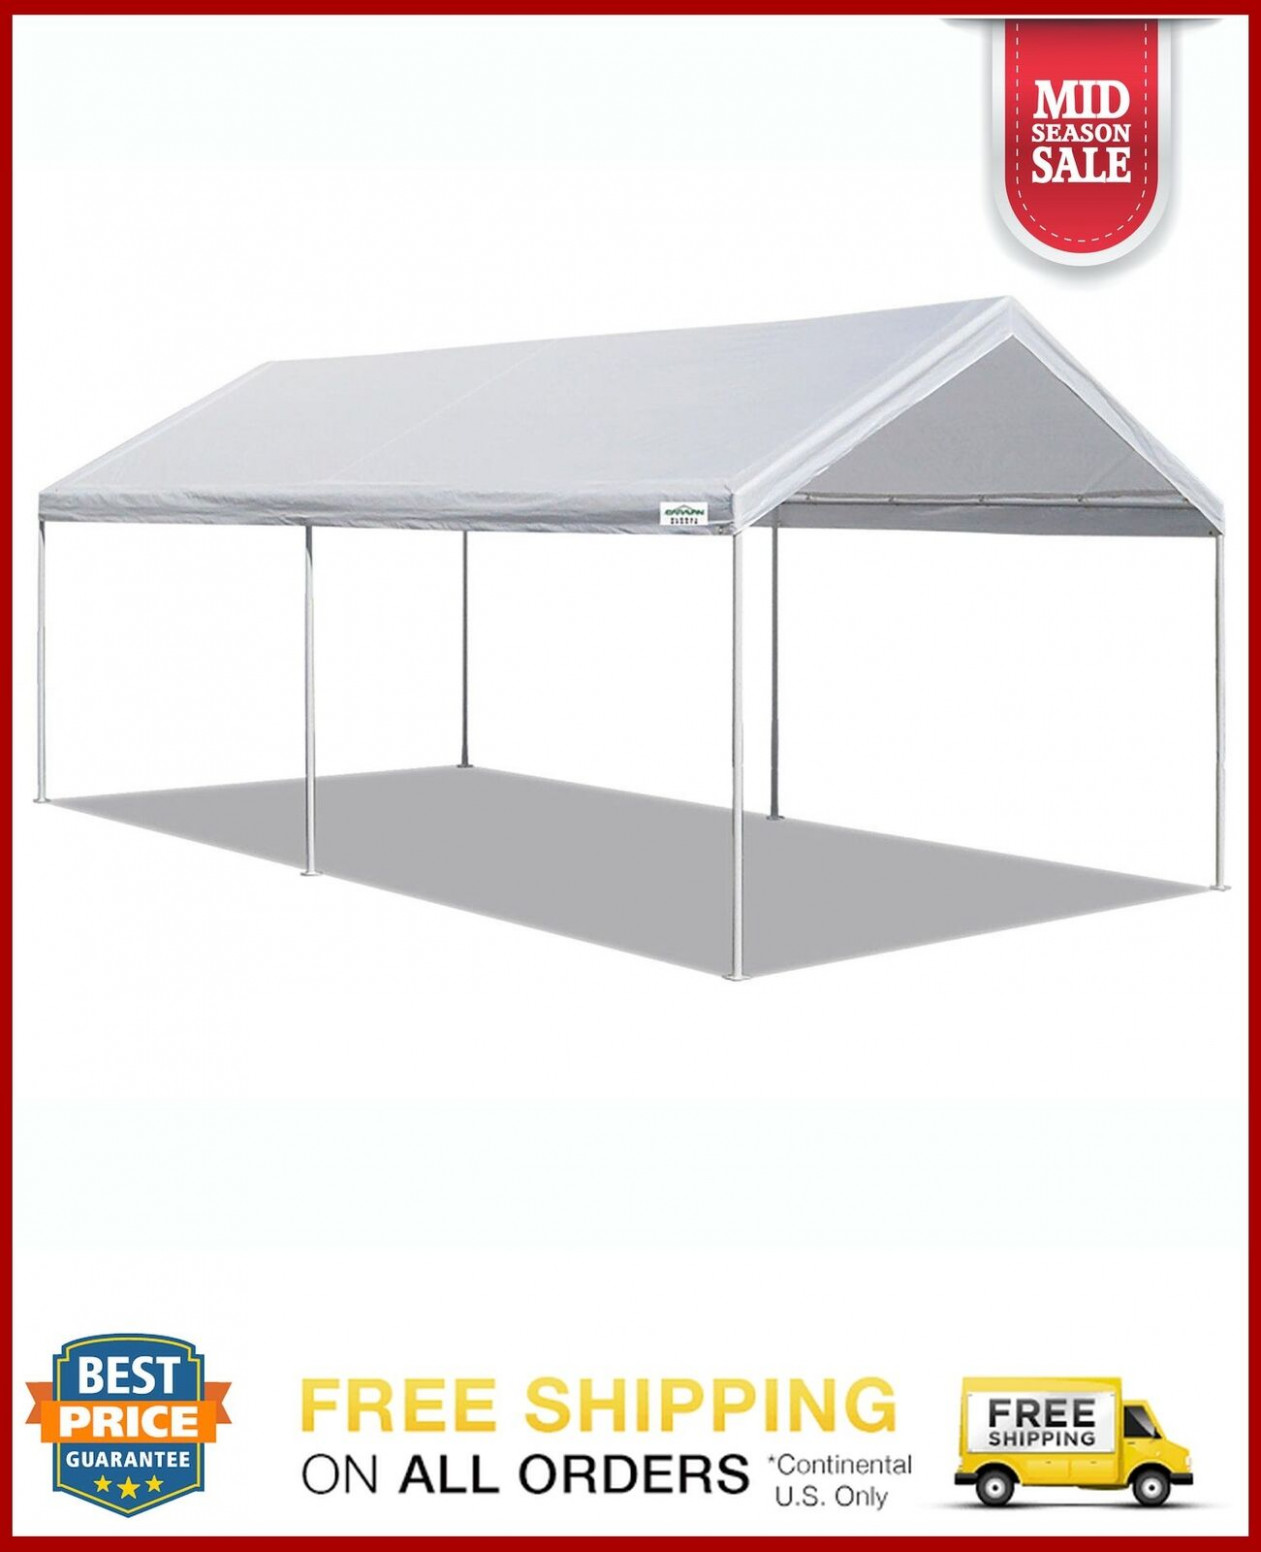 Details About White Heavy Duty Canopy Tent 9x9 FT Steel Carport Portable Car Shelter 9 Legs Prices For Canopy Carports